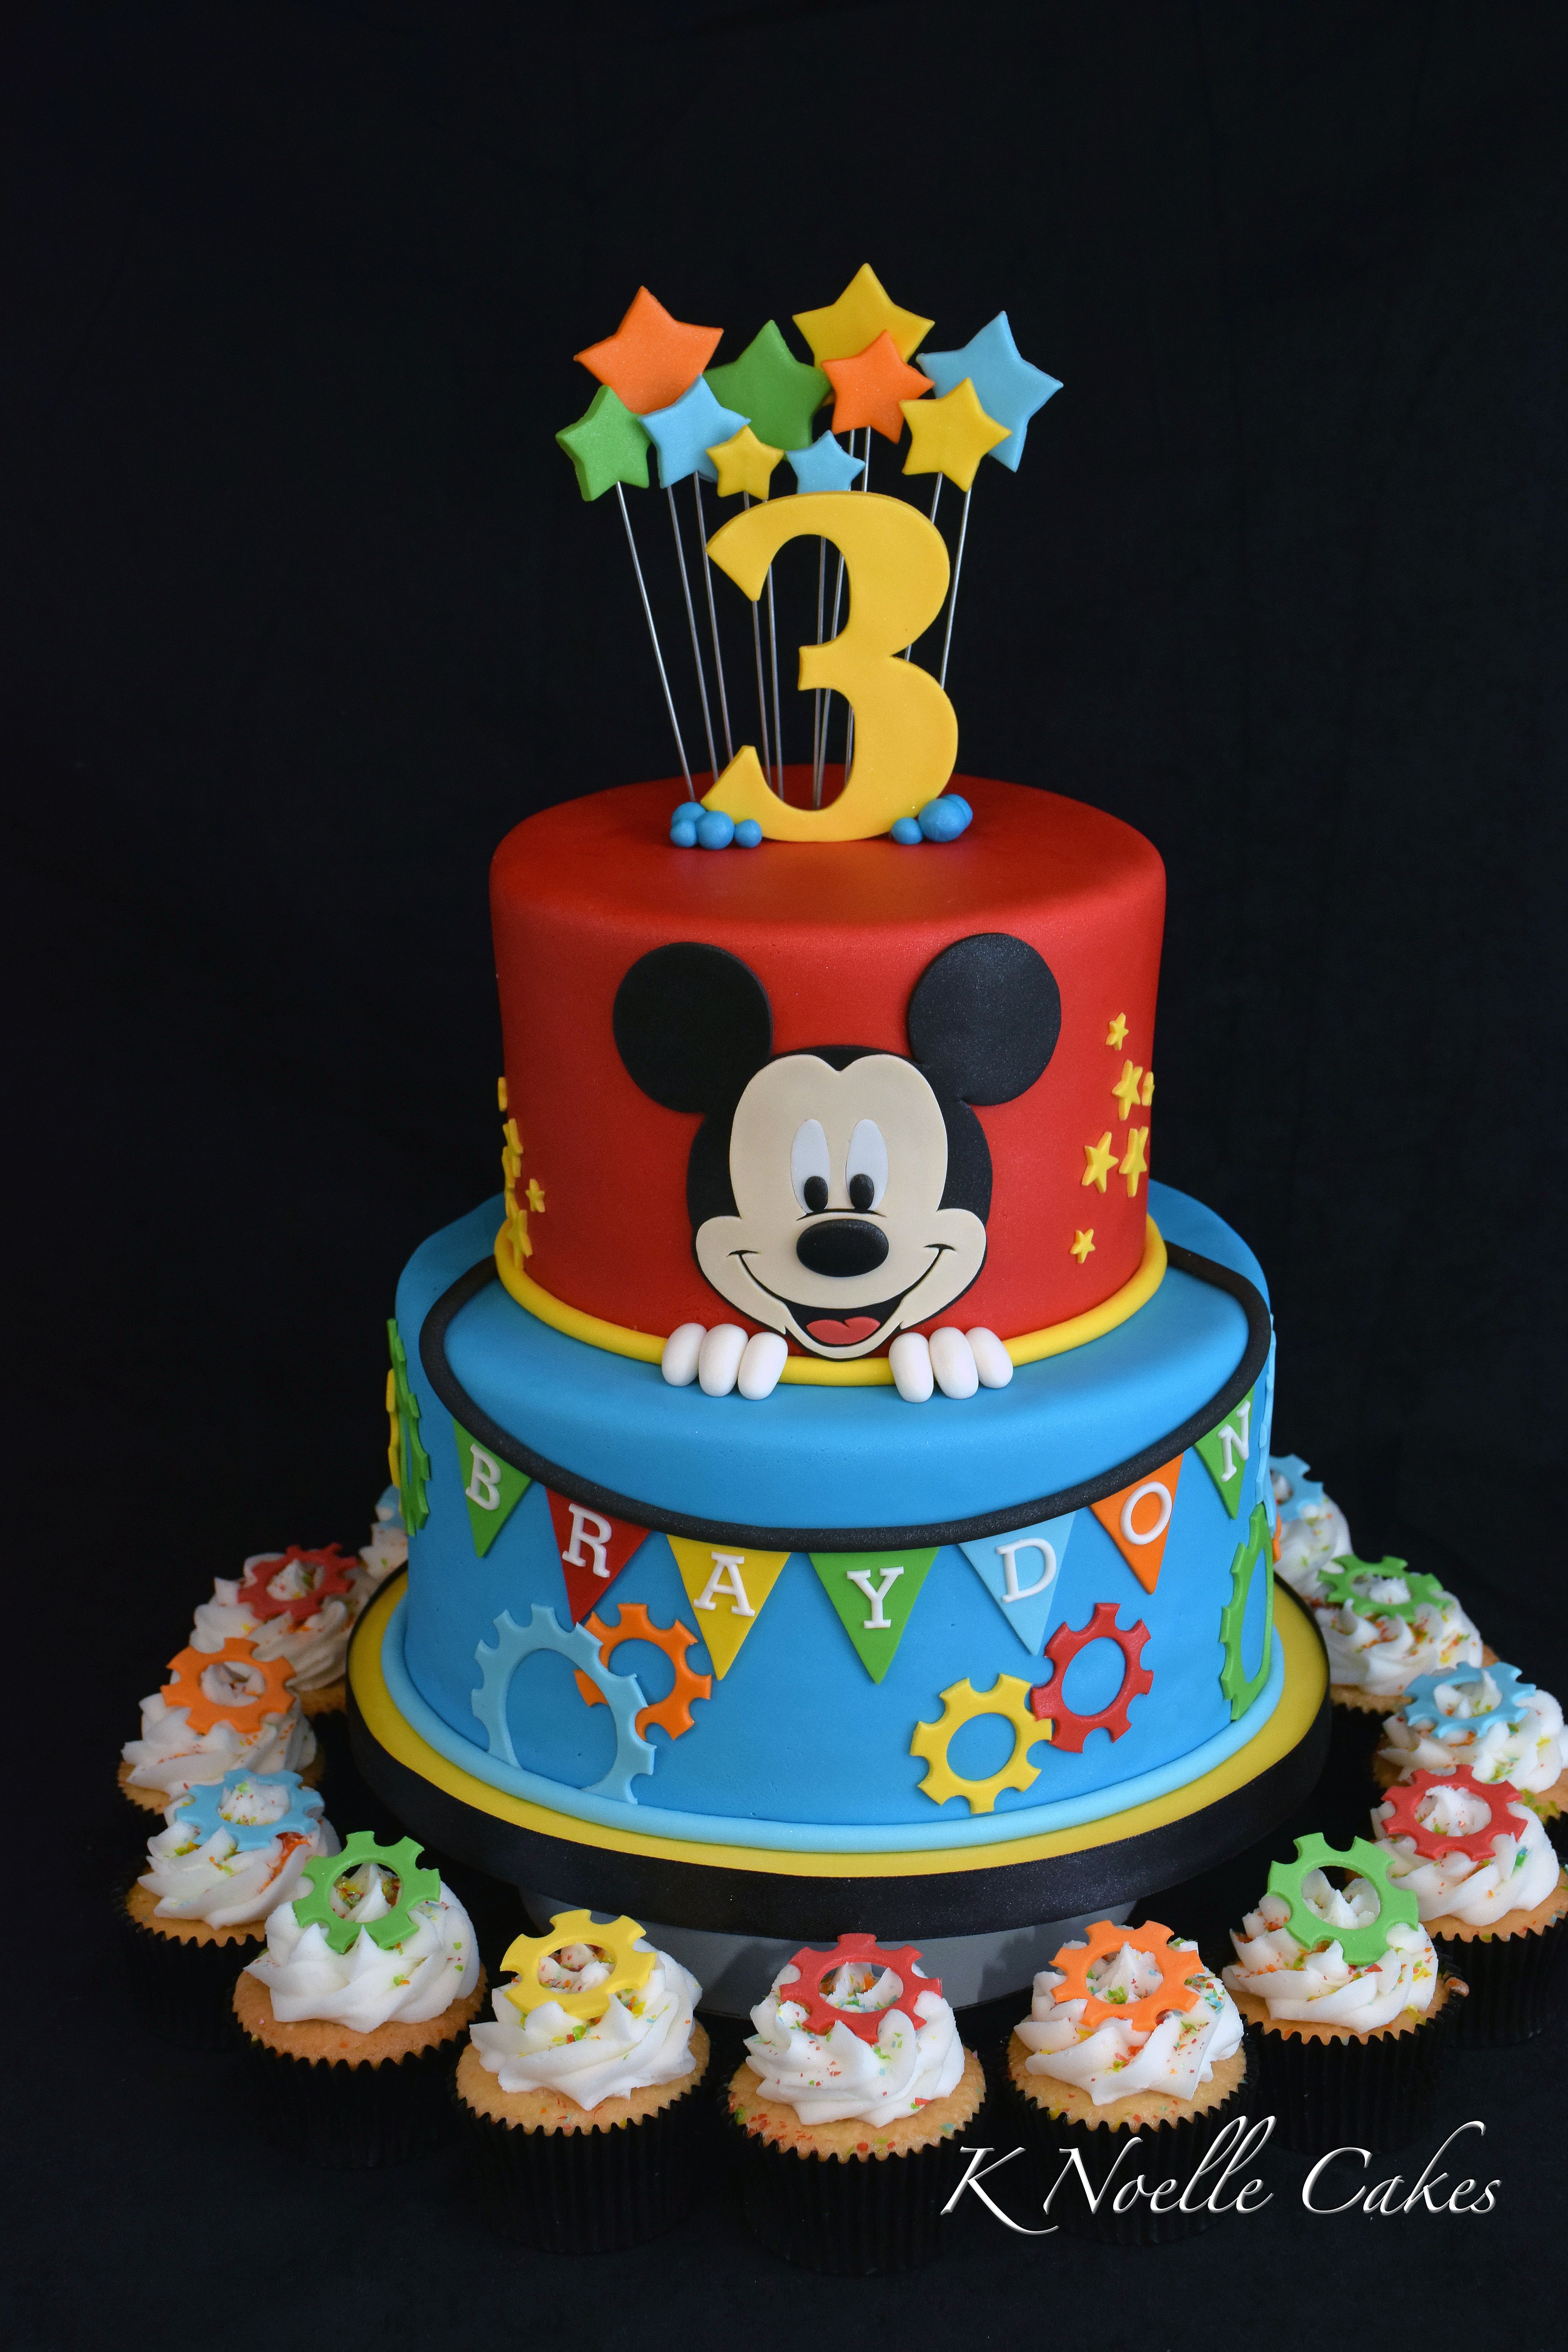 Mickey Mouse Clubhouse Birthday Cakes Mickey Mouse Theme Cake K Noelle Cakes Cakes K Noelle Cakes